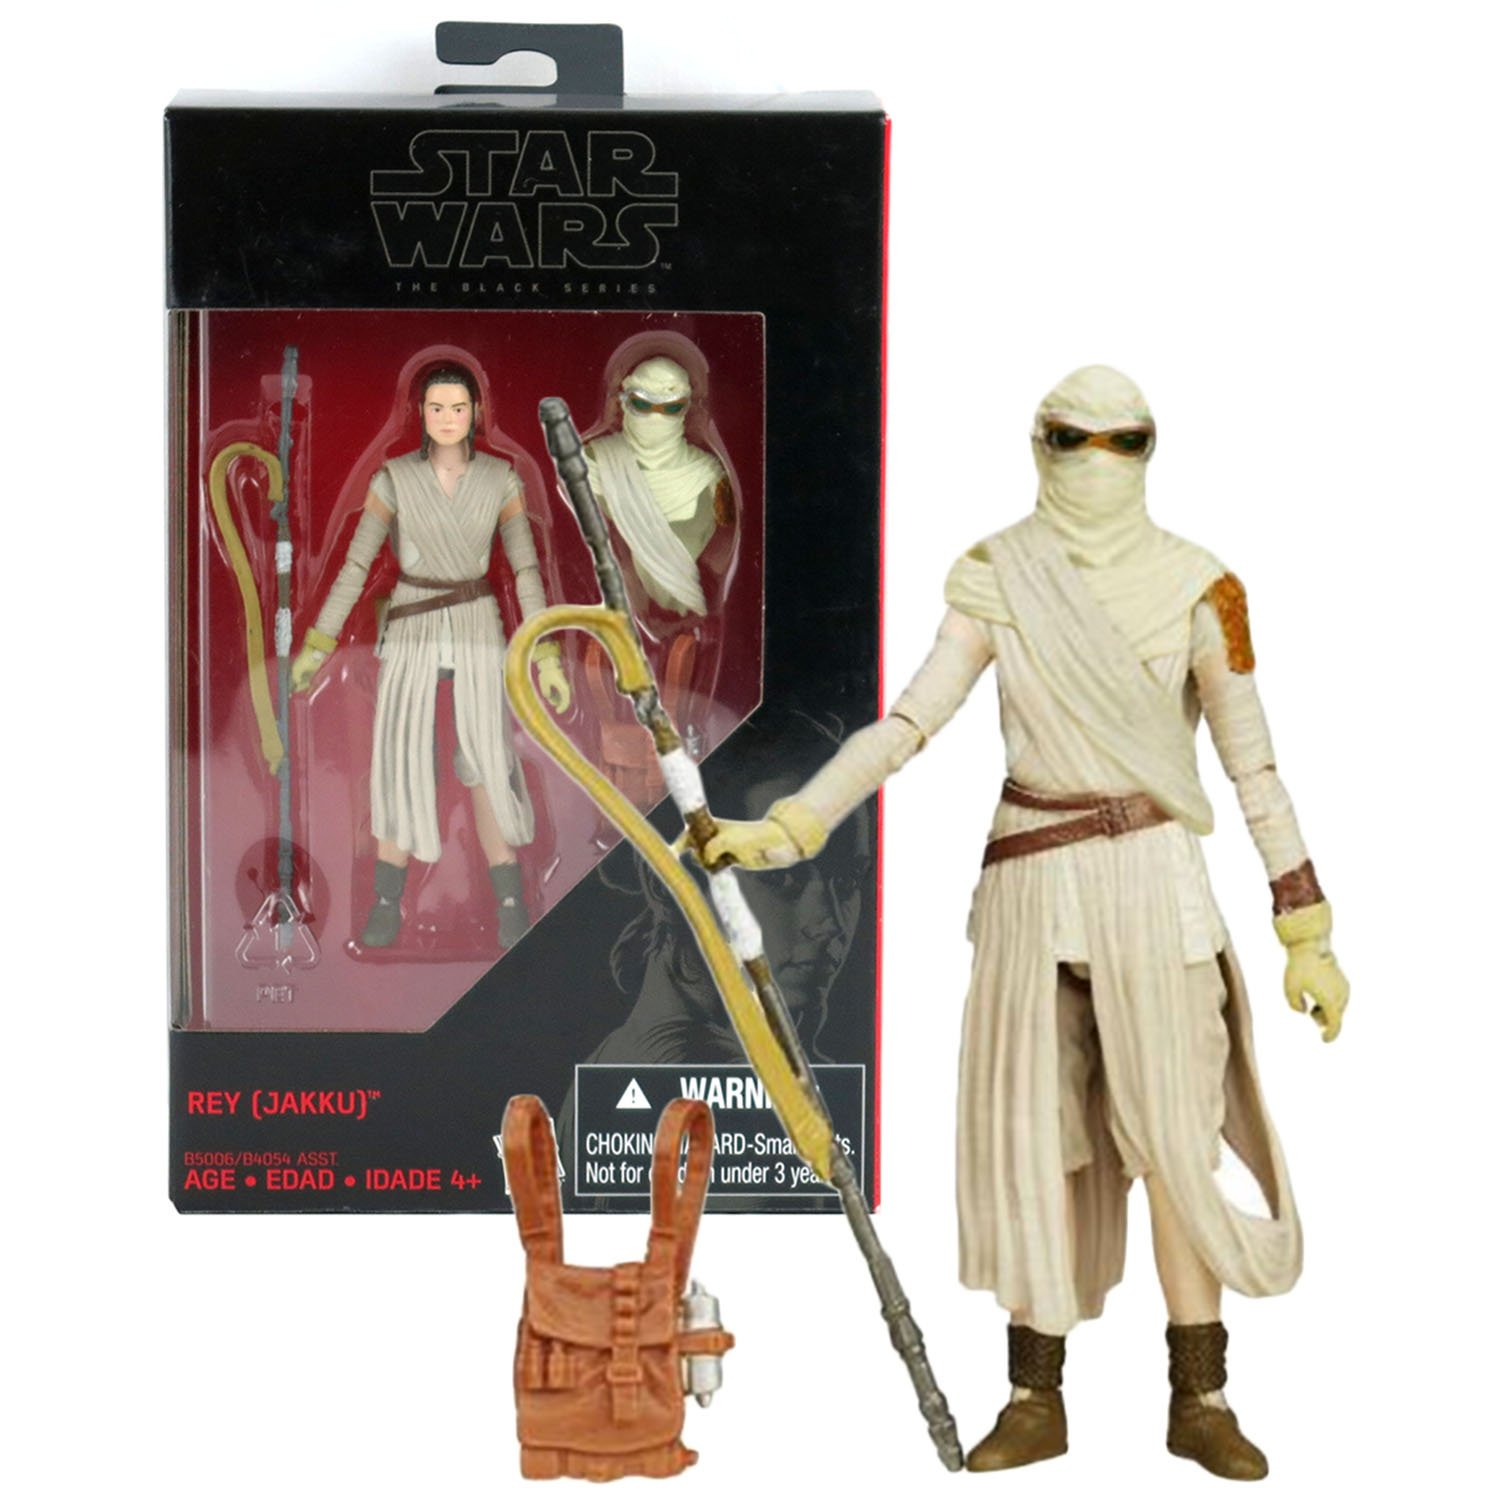 Star Wars Rey Jakku Exclusive Action Figure 2015 The Black Series 3.75 Inches B5006